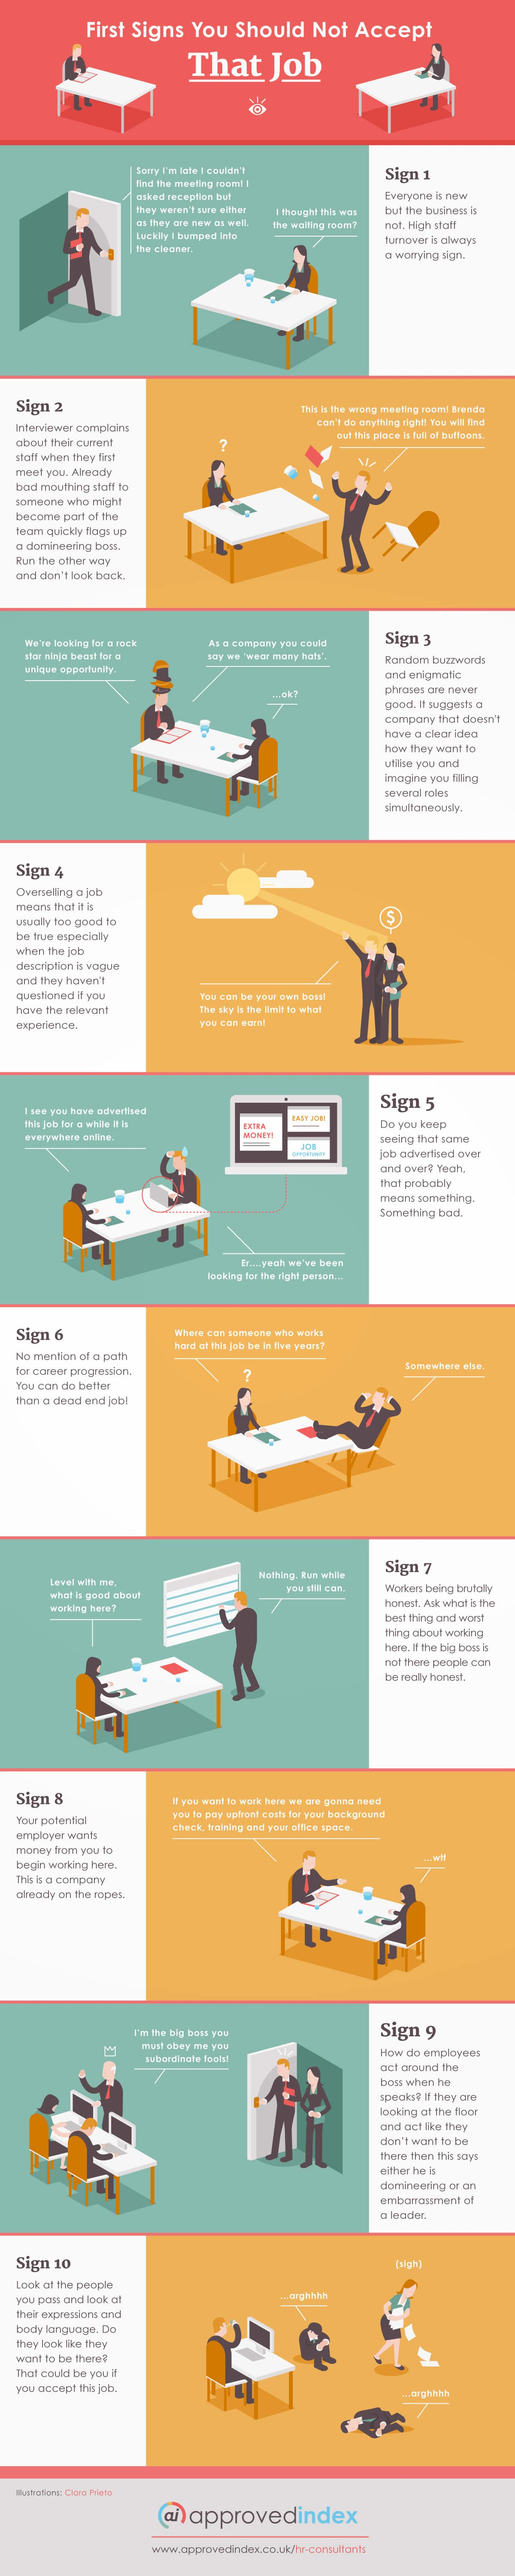 10 Signs You Should Not Accept That Job [Infographic]